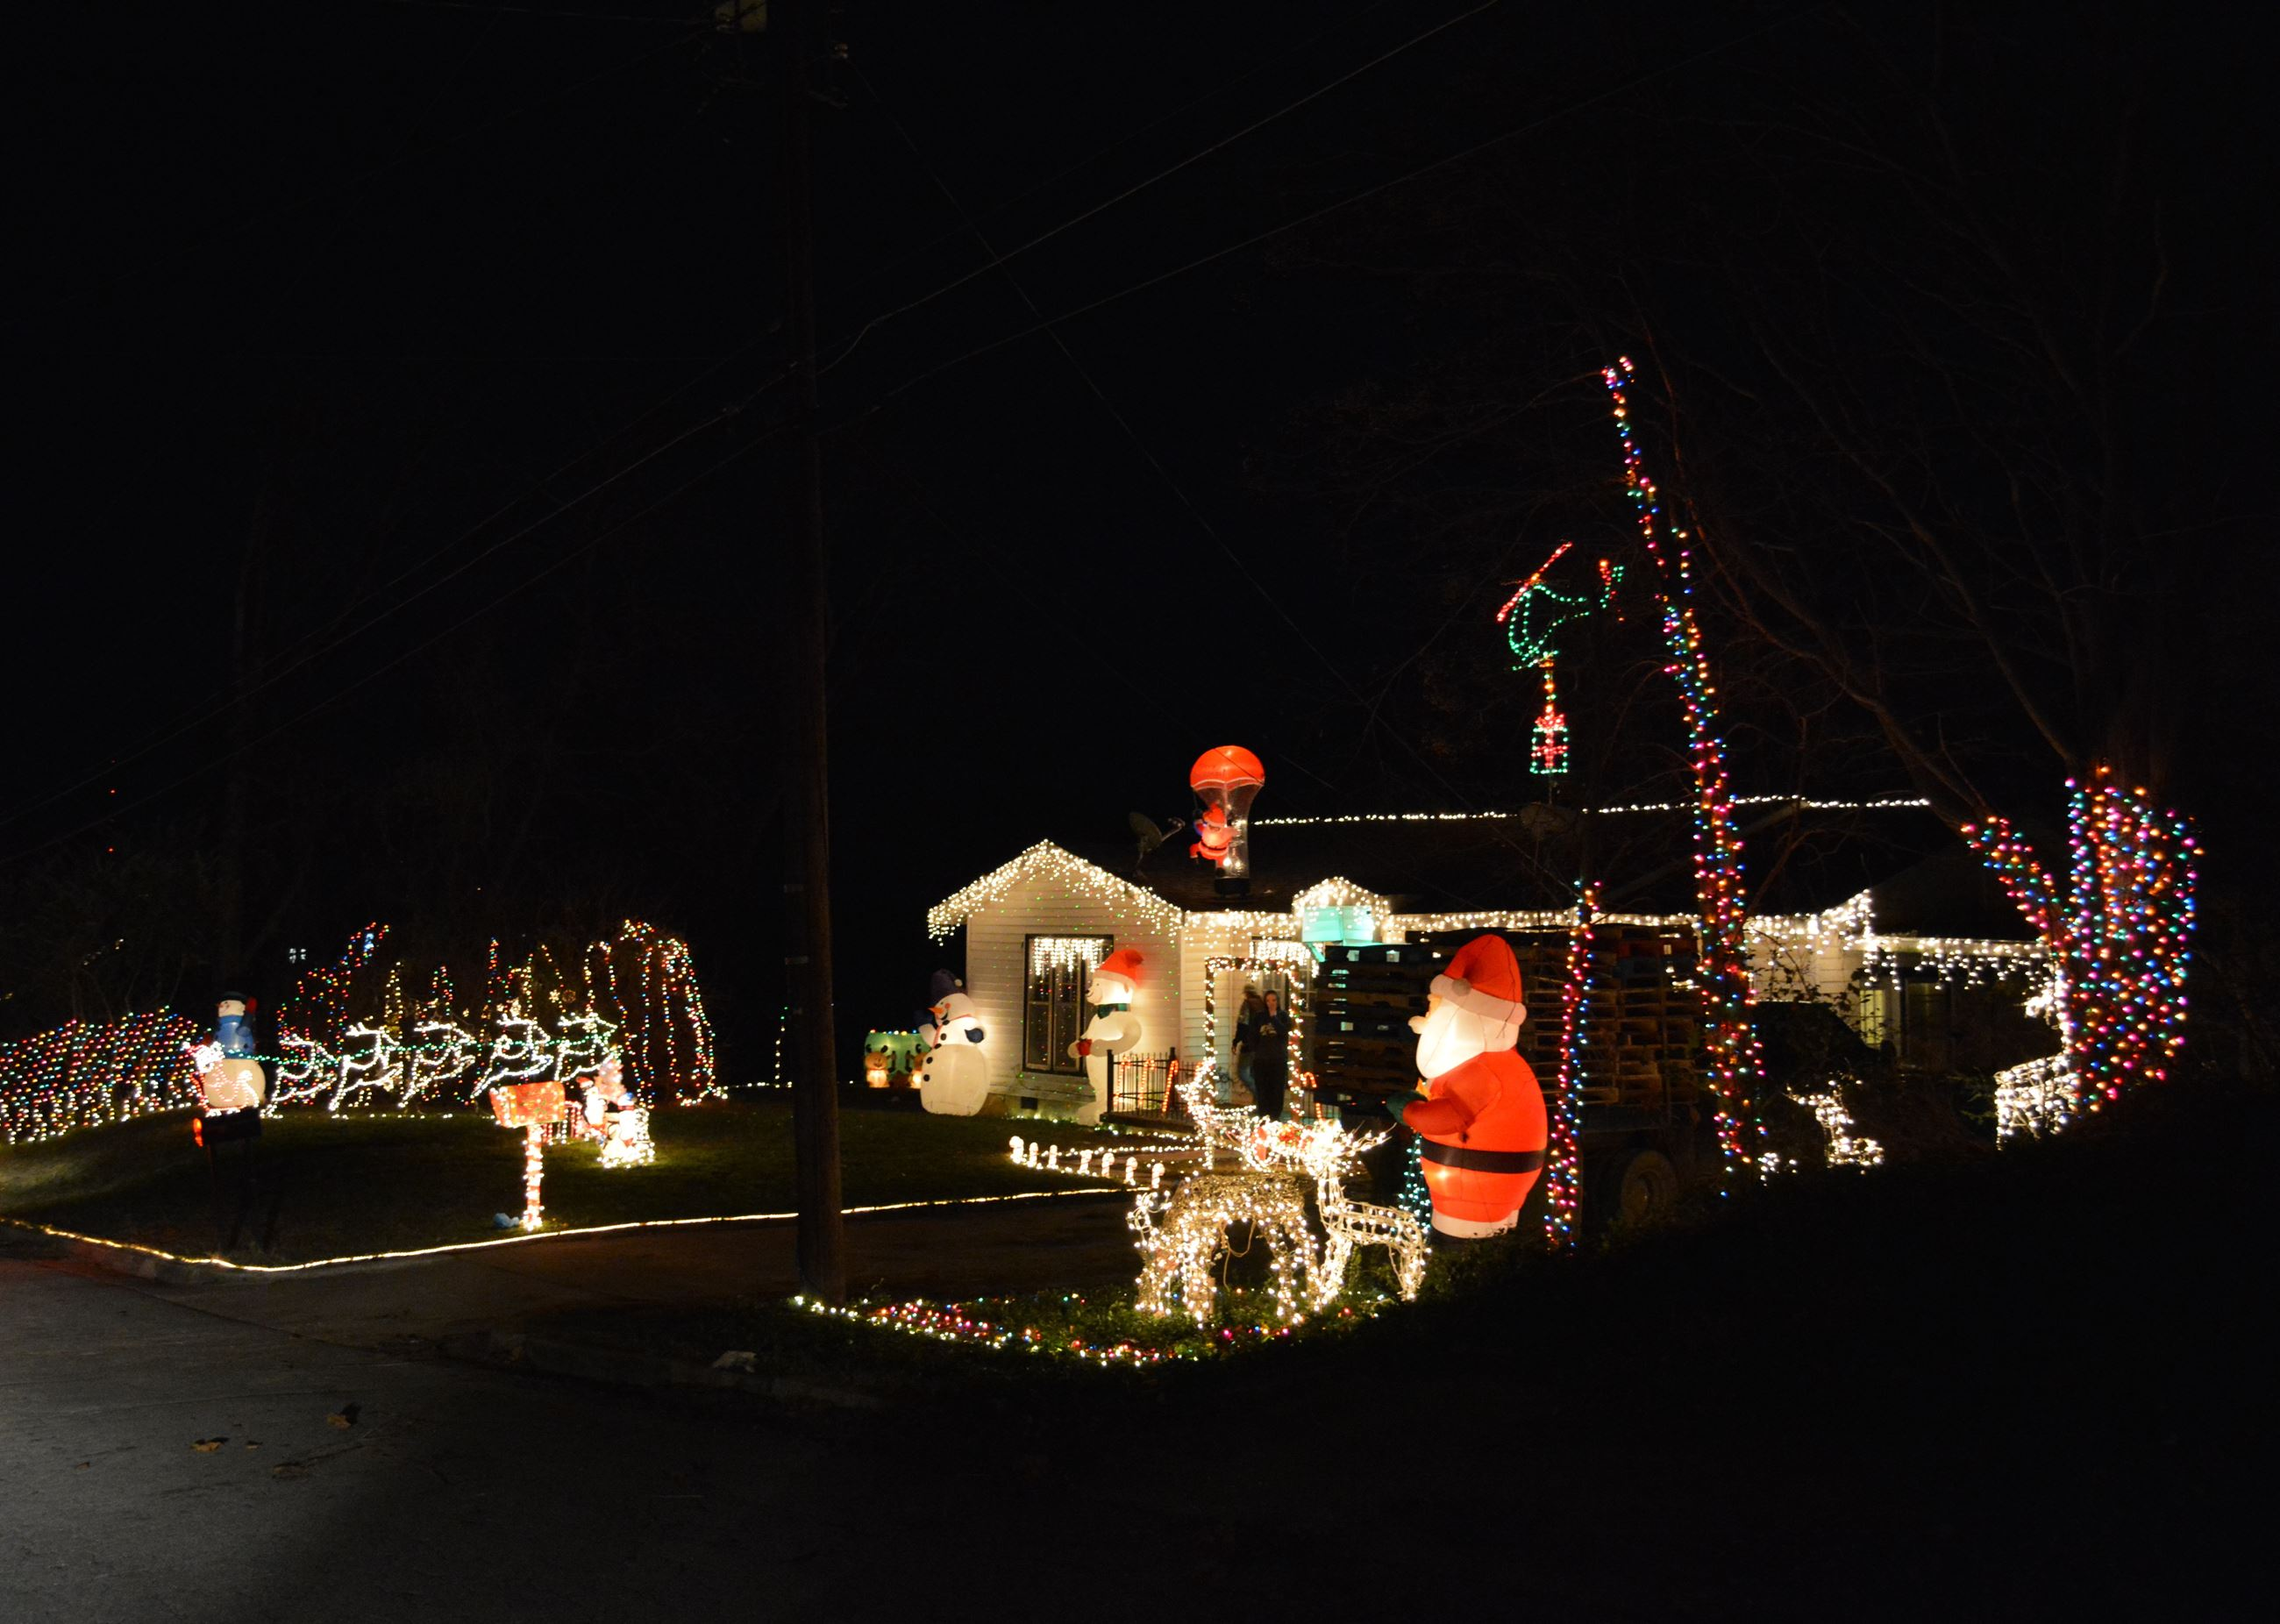 Ward 2 - 1st Place & Most Decorated Street